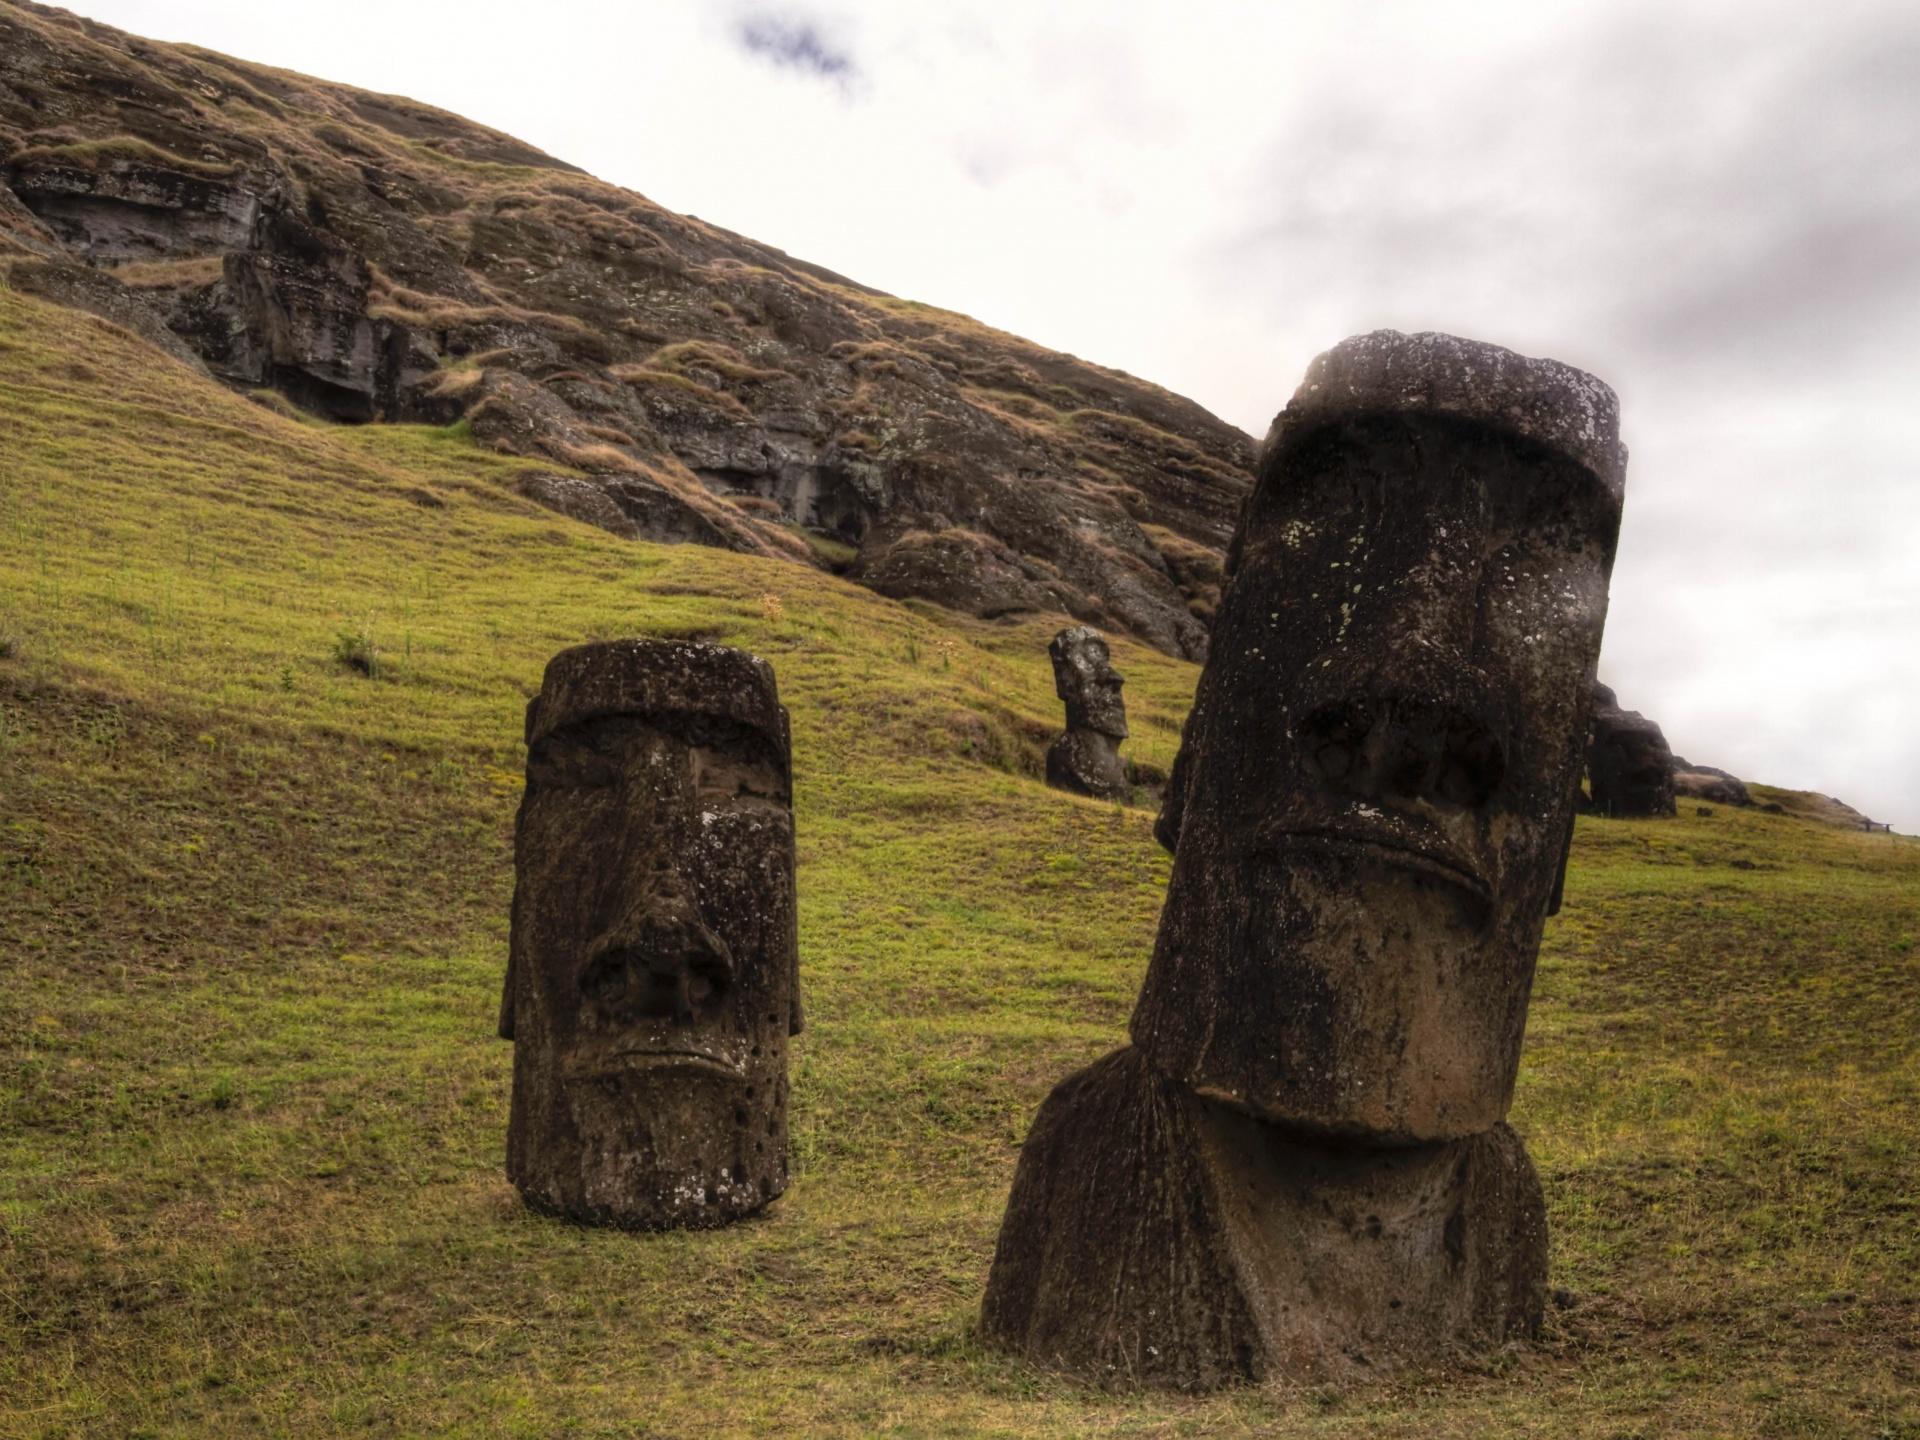 HD Easter Island Images 1920x1440